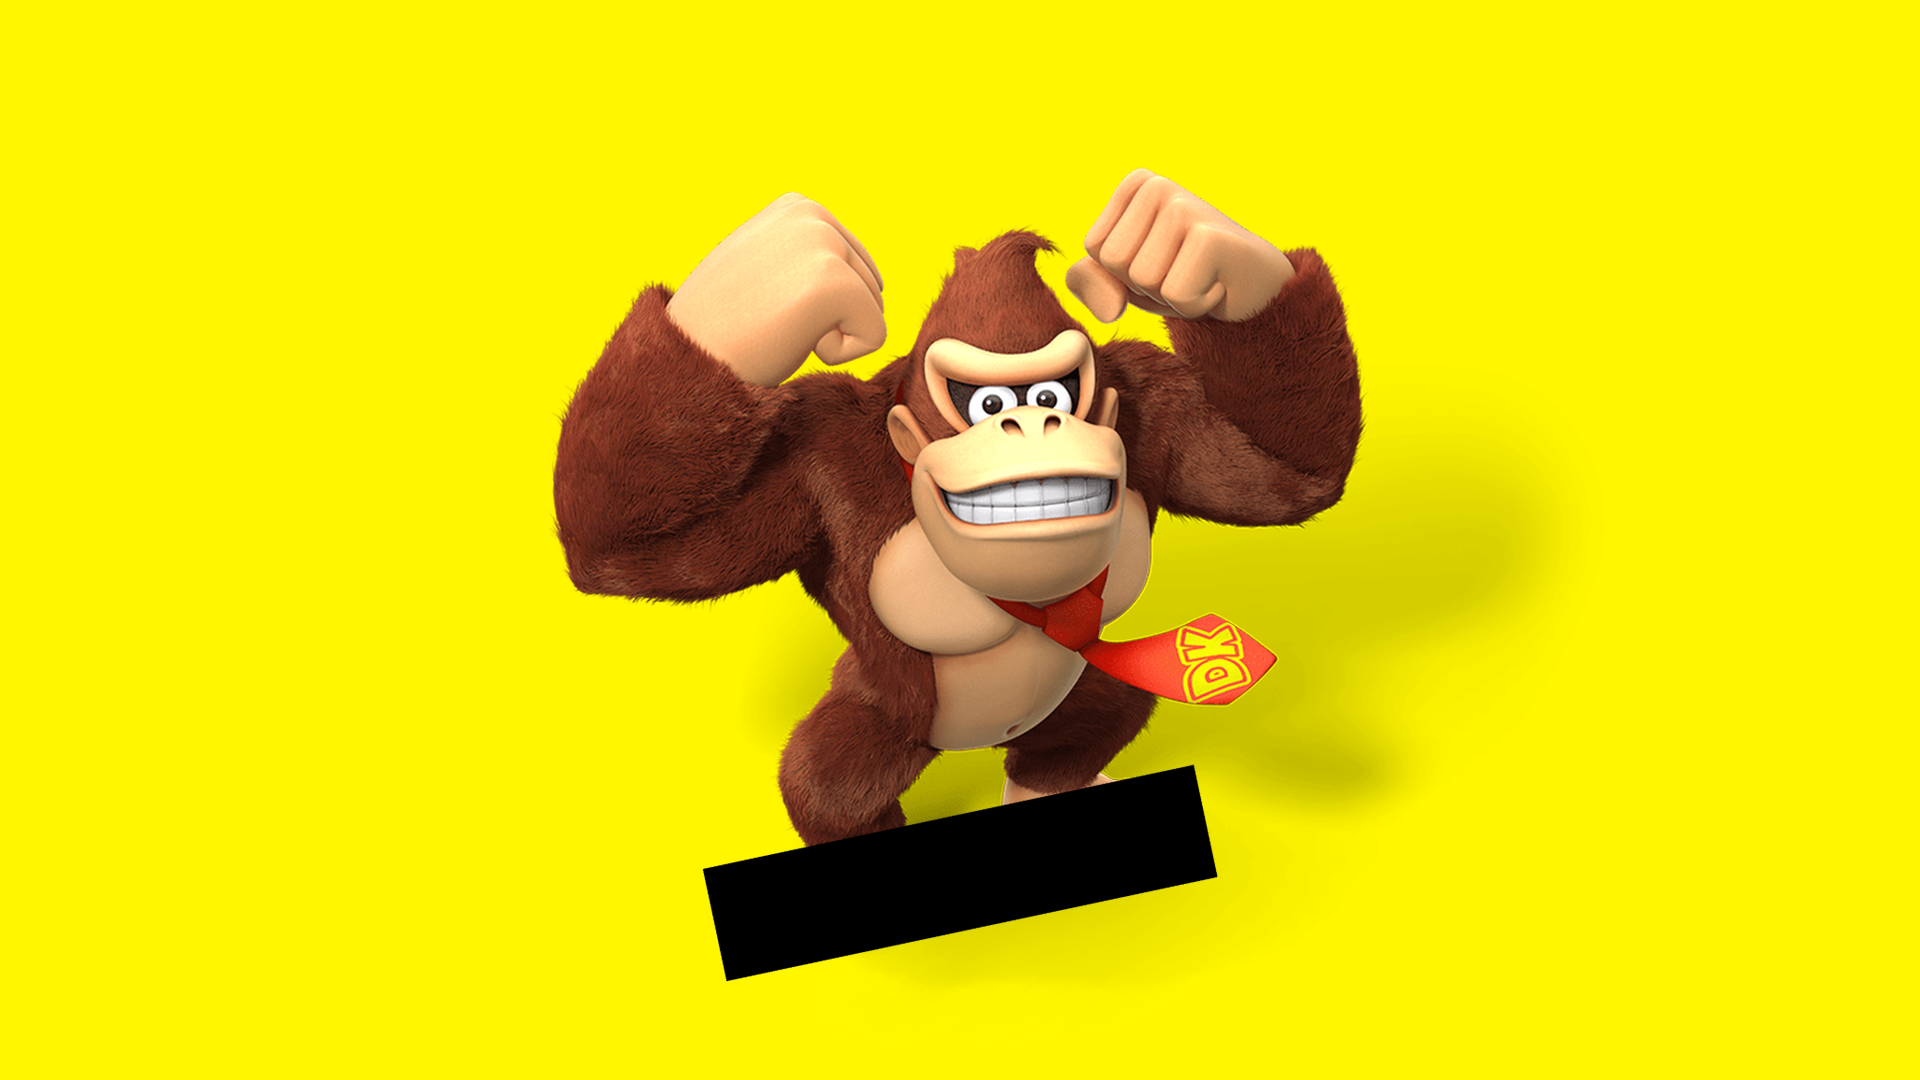 Donkey Kong Has Mouths On His Feet And I Hate It